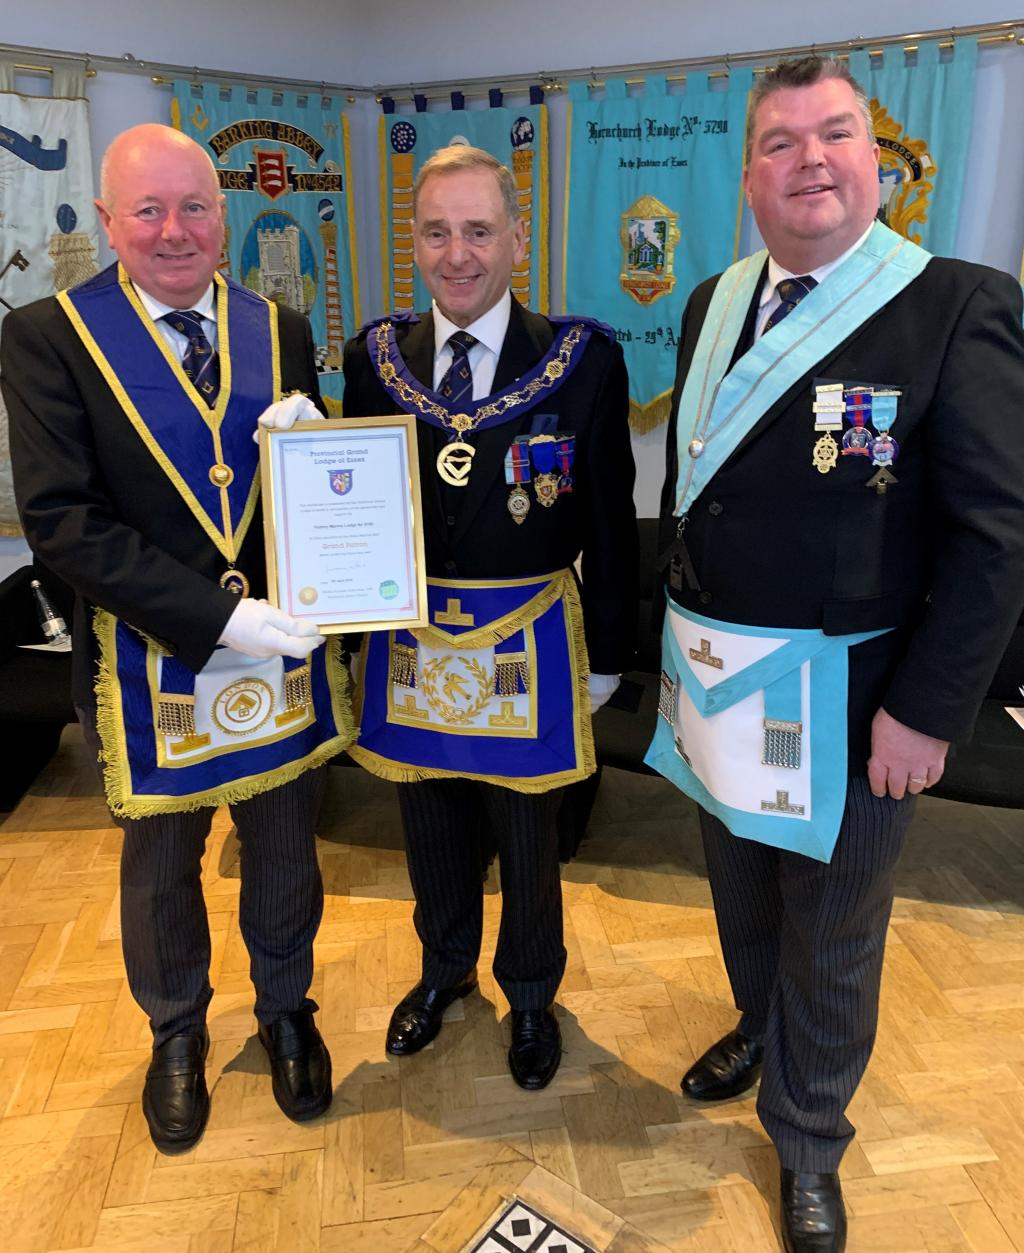 APGM with Grand Patron Certificate.jpg